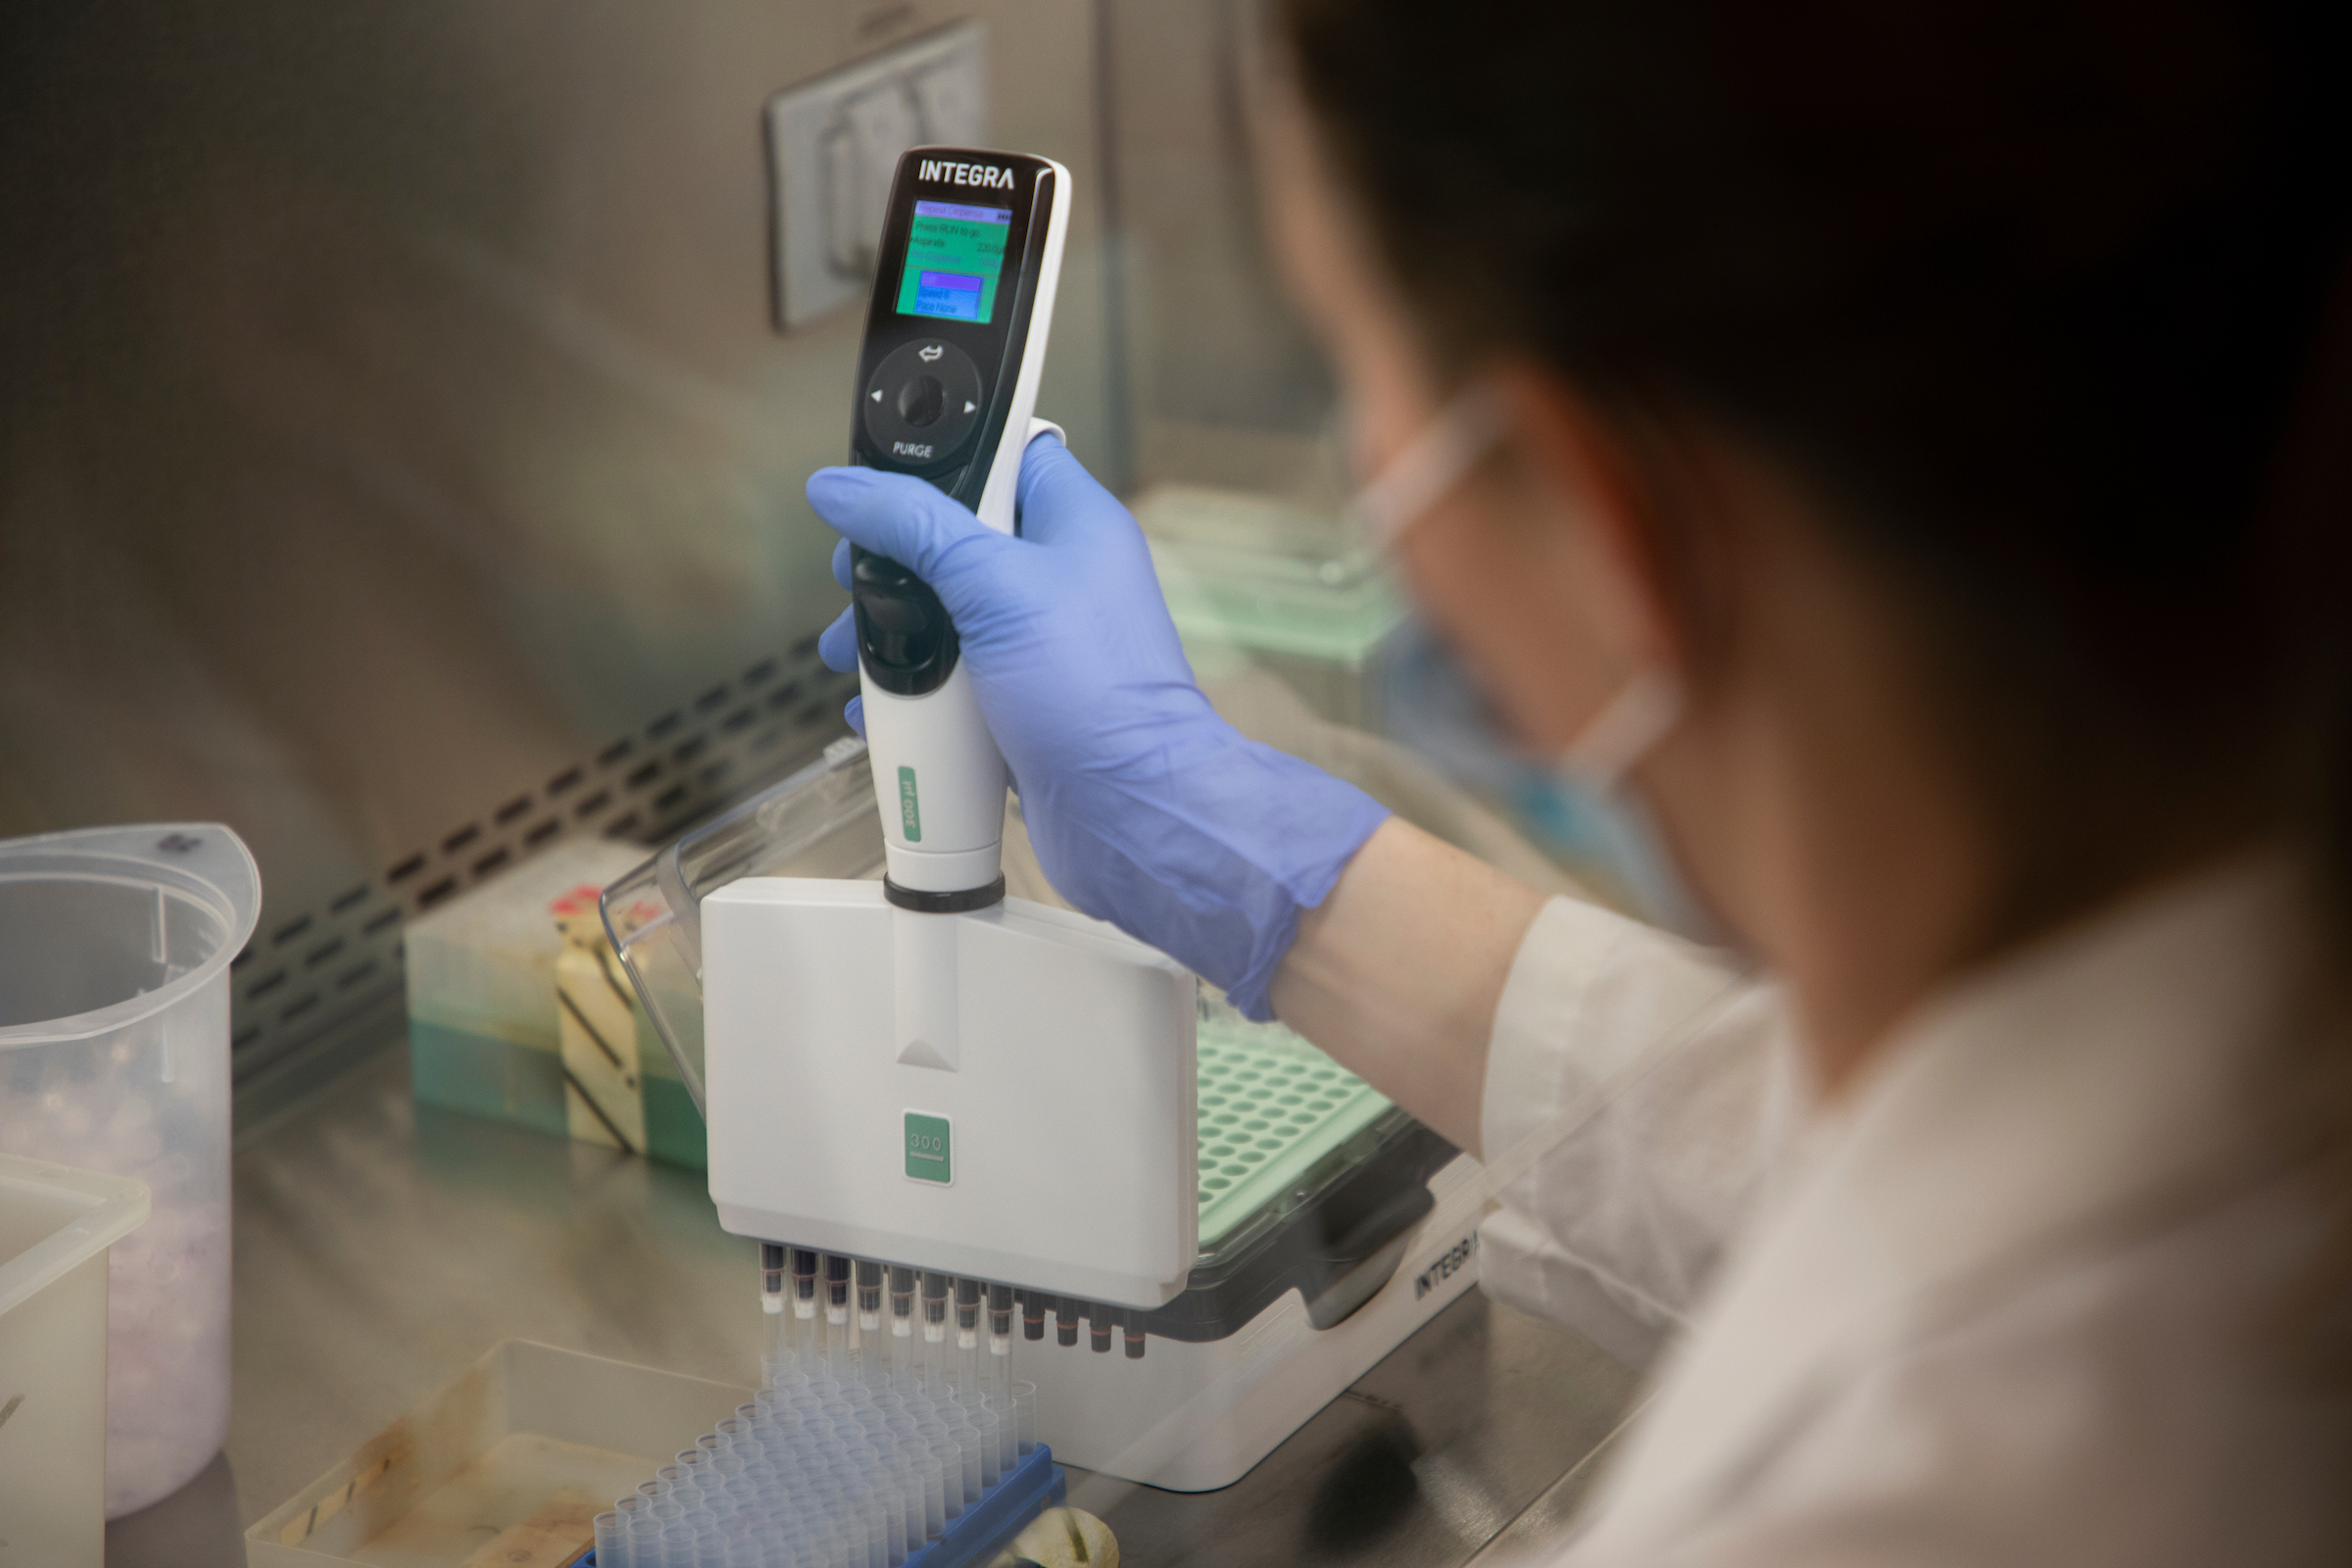 Image looking over a person's shoulder as they pipette in a lab.